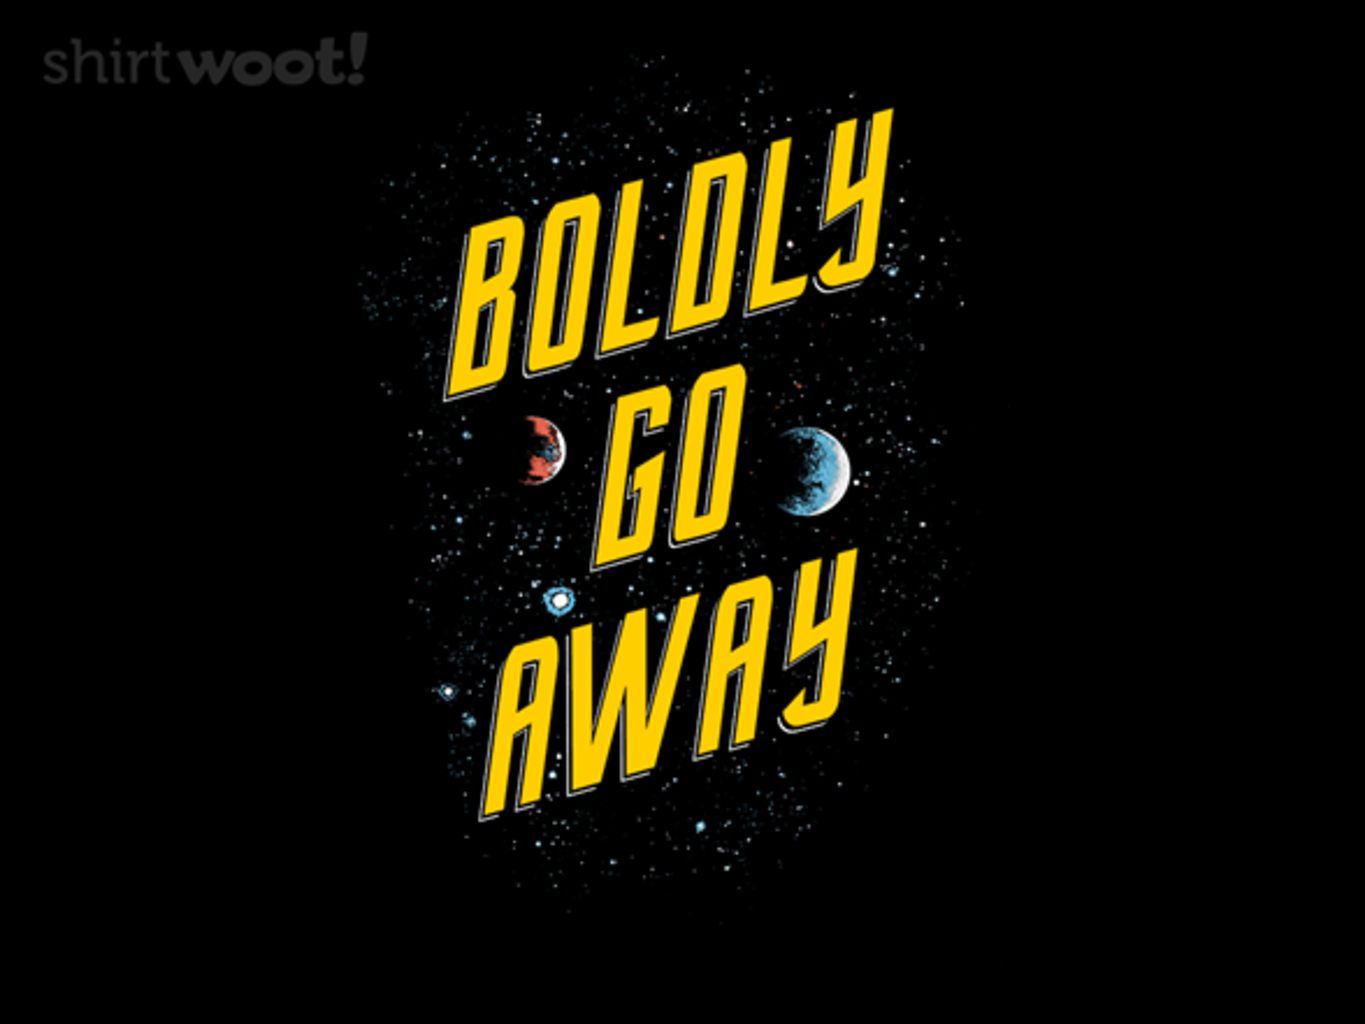 Woot!: Boldly Go Away